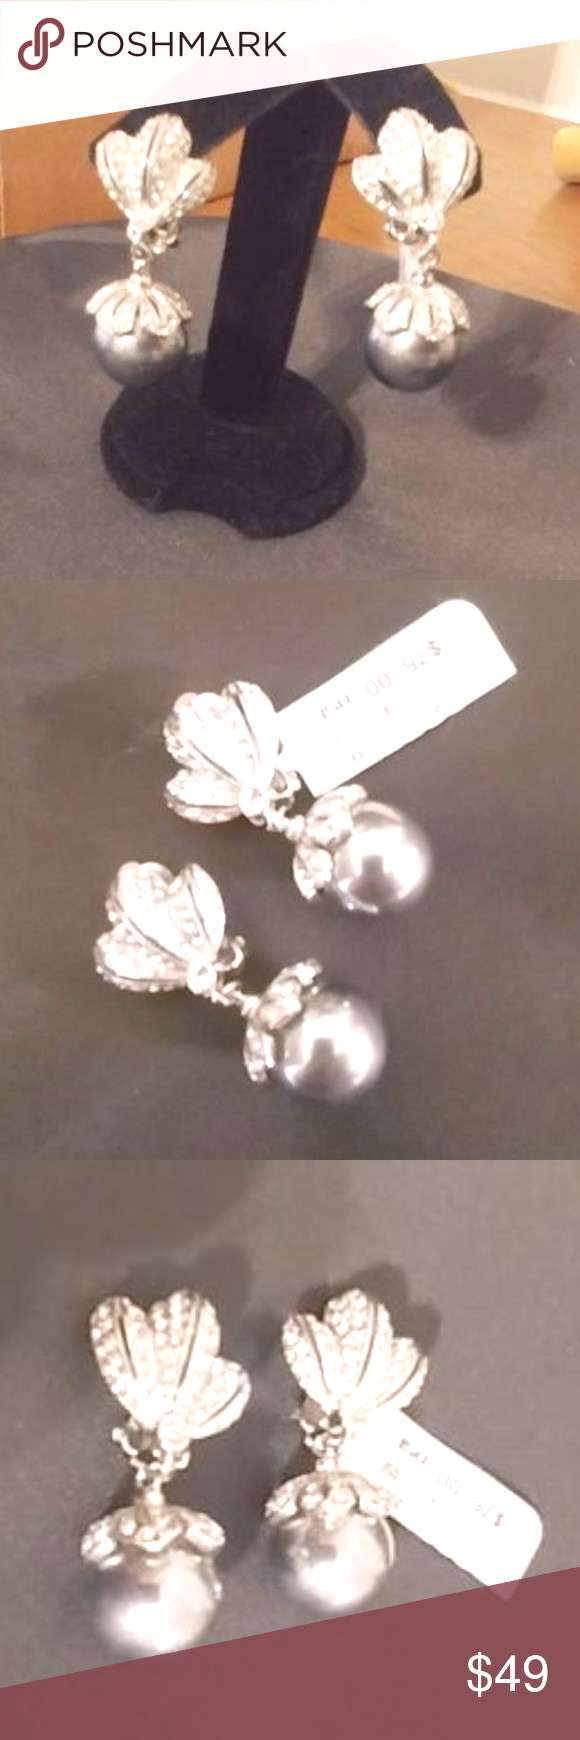 Vintage Jarin Clip Earrings Lillie Rubin Gorgeous sparkly Jarin earrings, nearly new. Worn once to